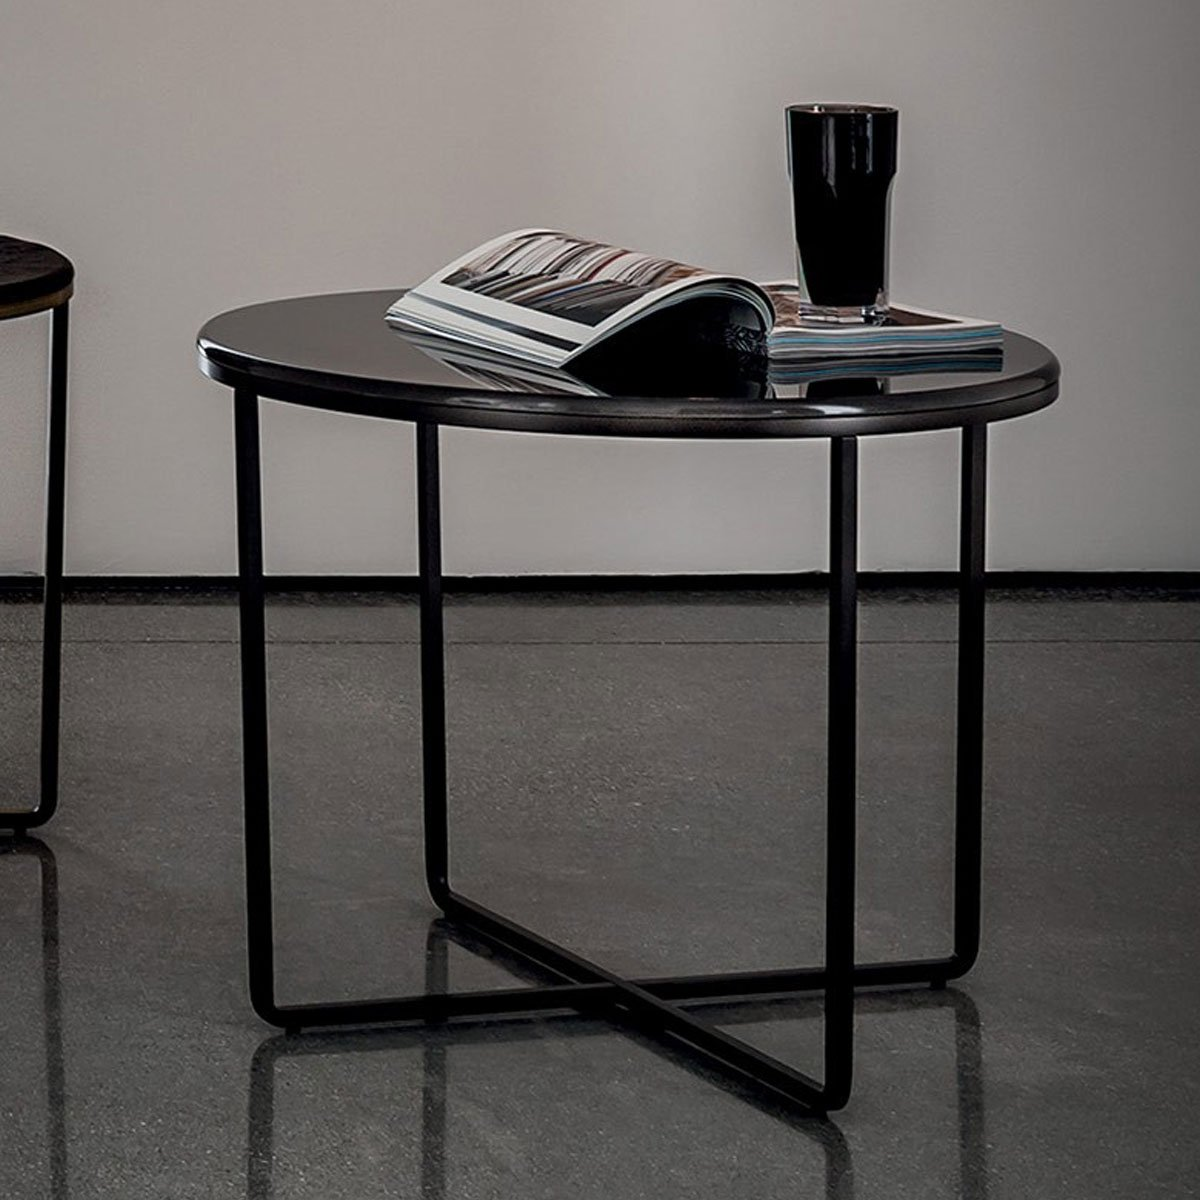 Ascot Round Glass Coffee Table: Piktor Round Glass And Metal Coffee Table